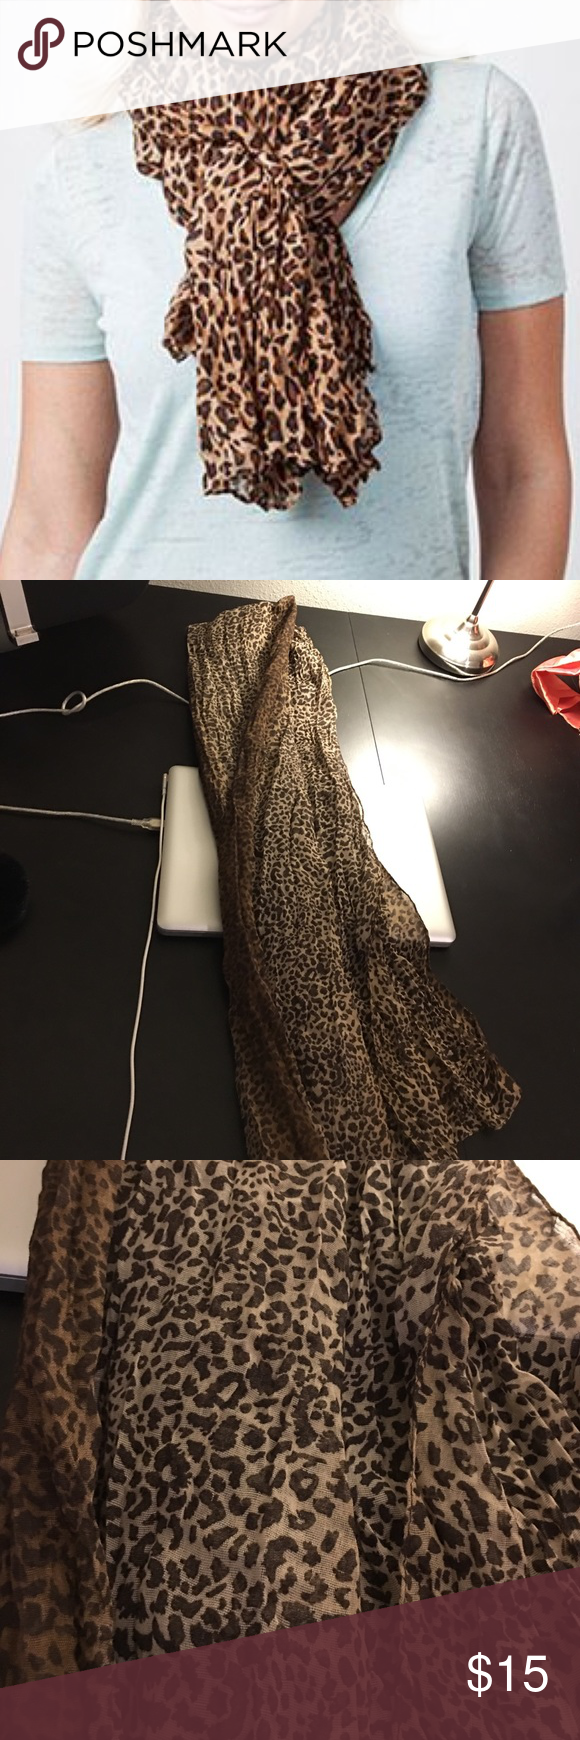 🐆 Leopard Print Scarf Brand new. Never worn. Leopard print super long scarf. Will definitely keep you warm. Charlotte Russe Accessories Scarves & Wraps